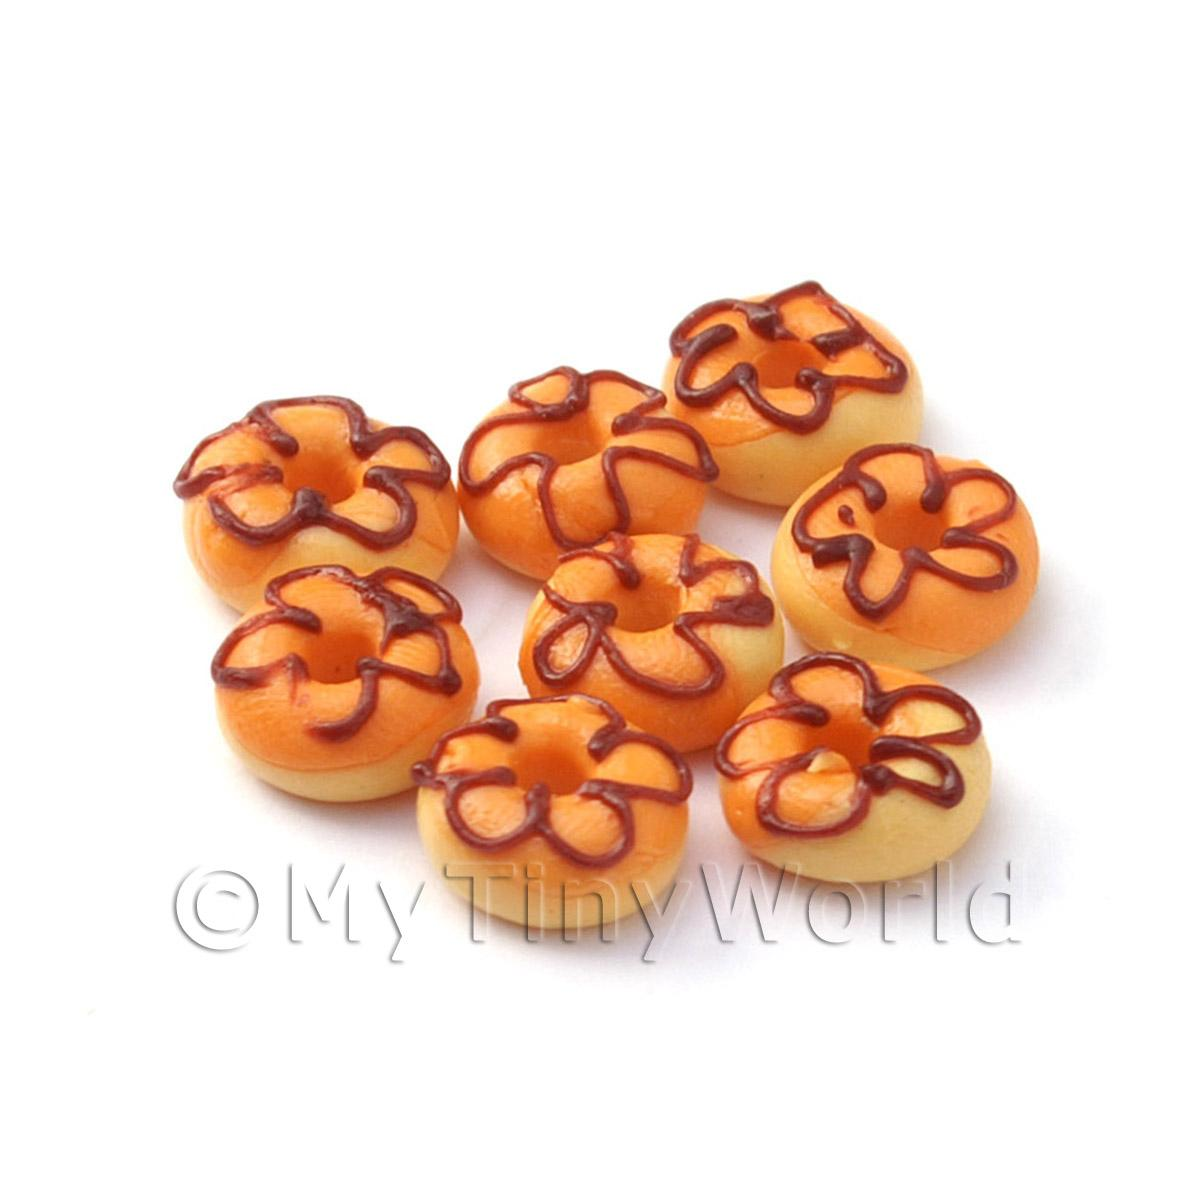 Dolls House Miniature Orange Iced Flower Donut